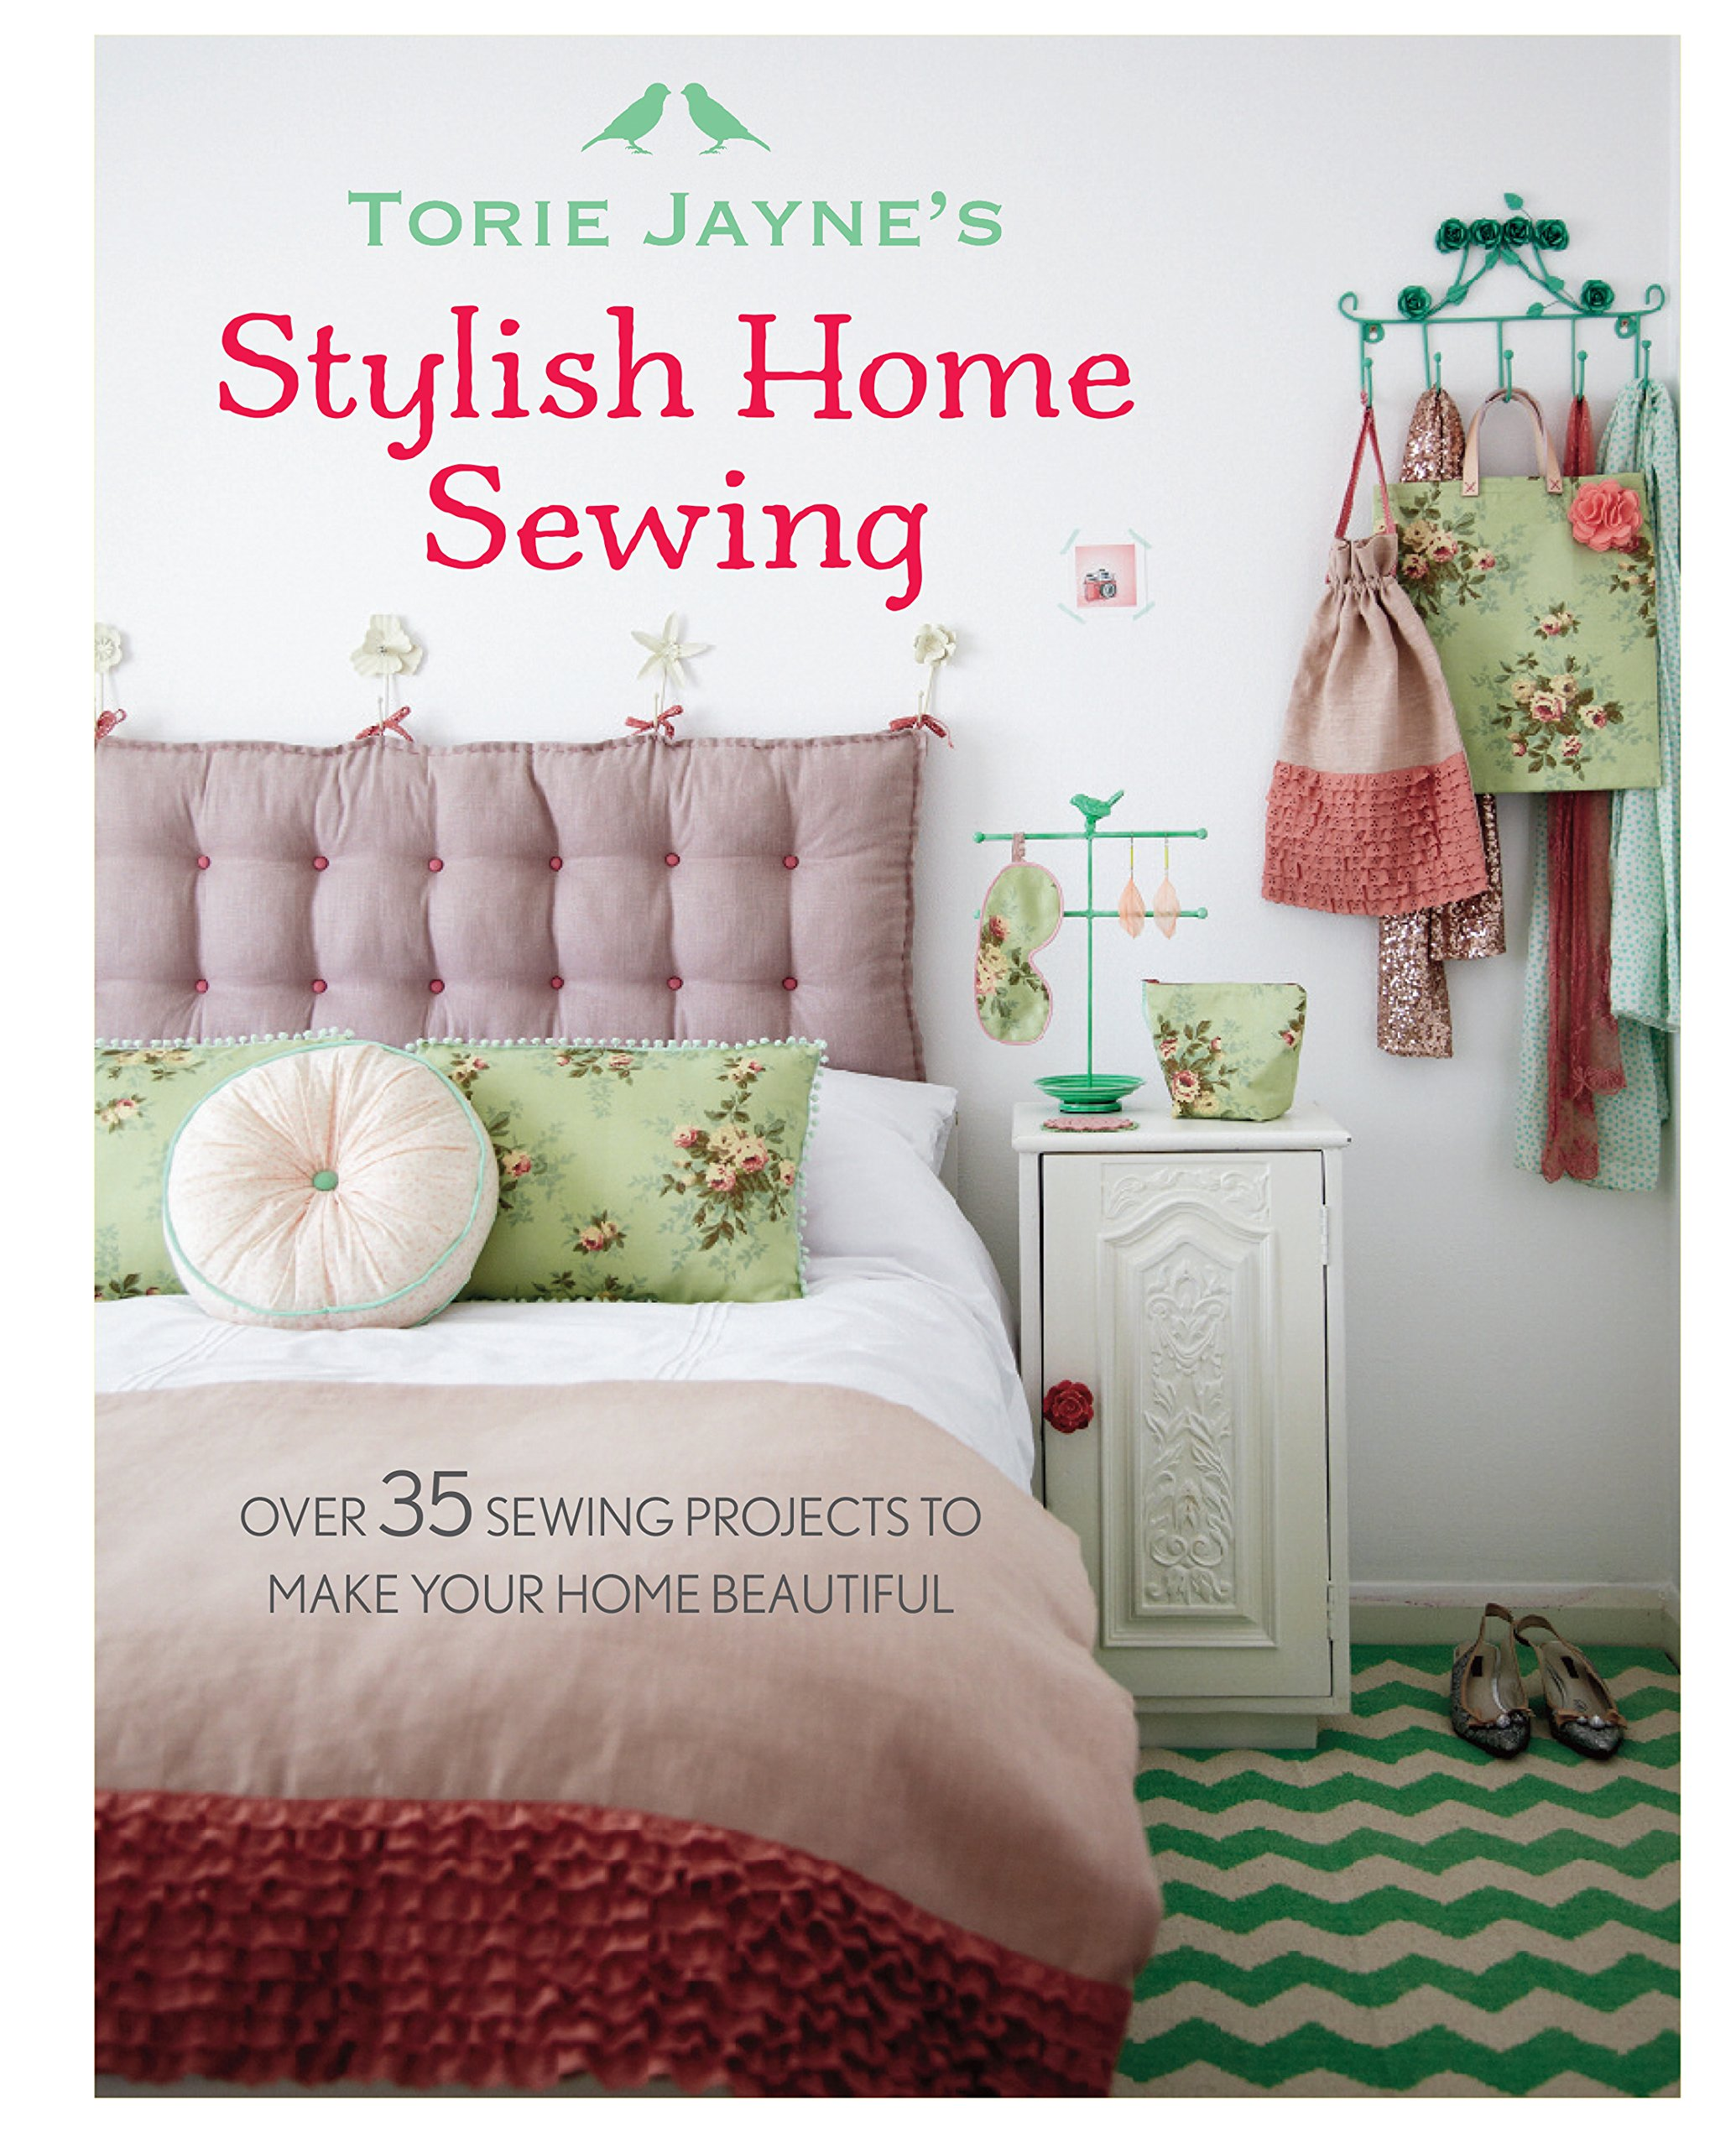 Torie Jayne's Stylish Home Sewing: Over 35 sewing projects to make your home beautiful PDF